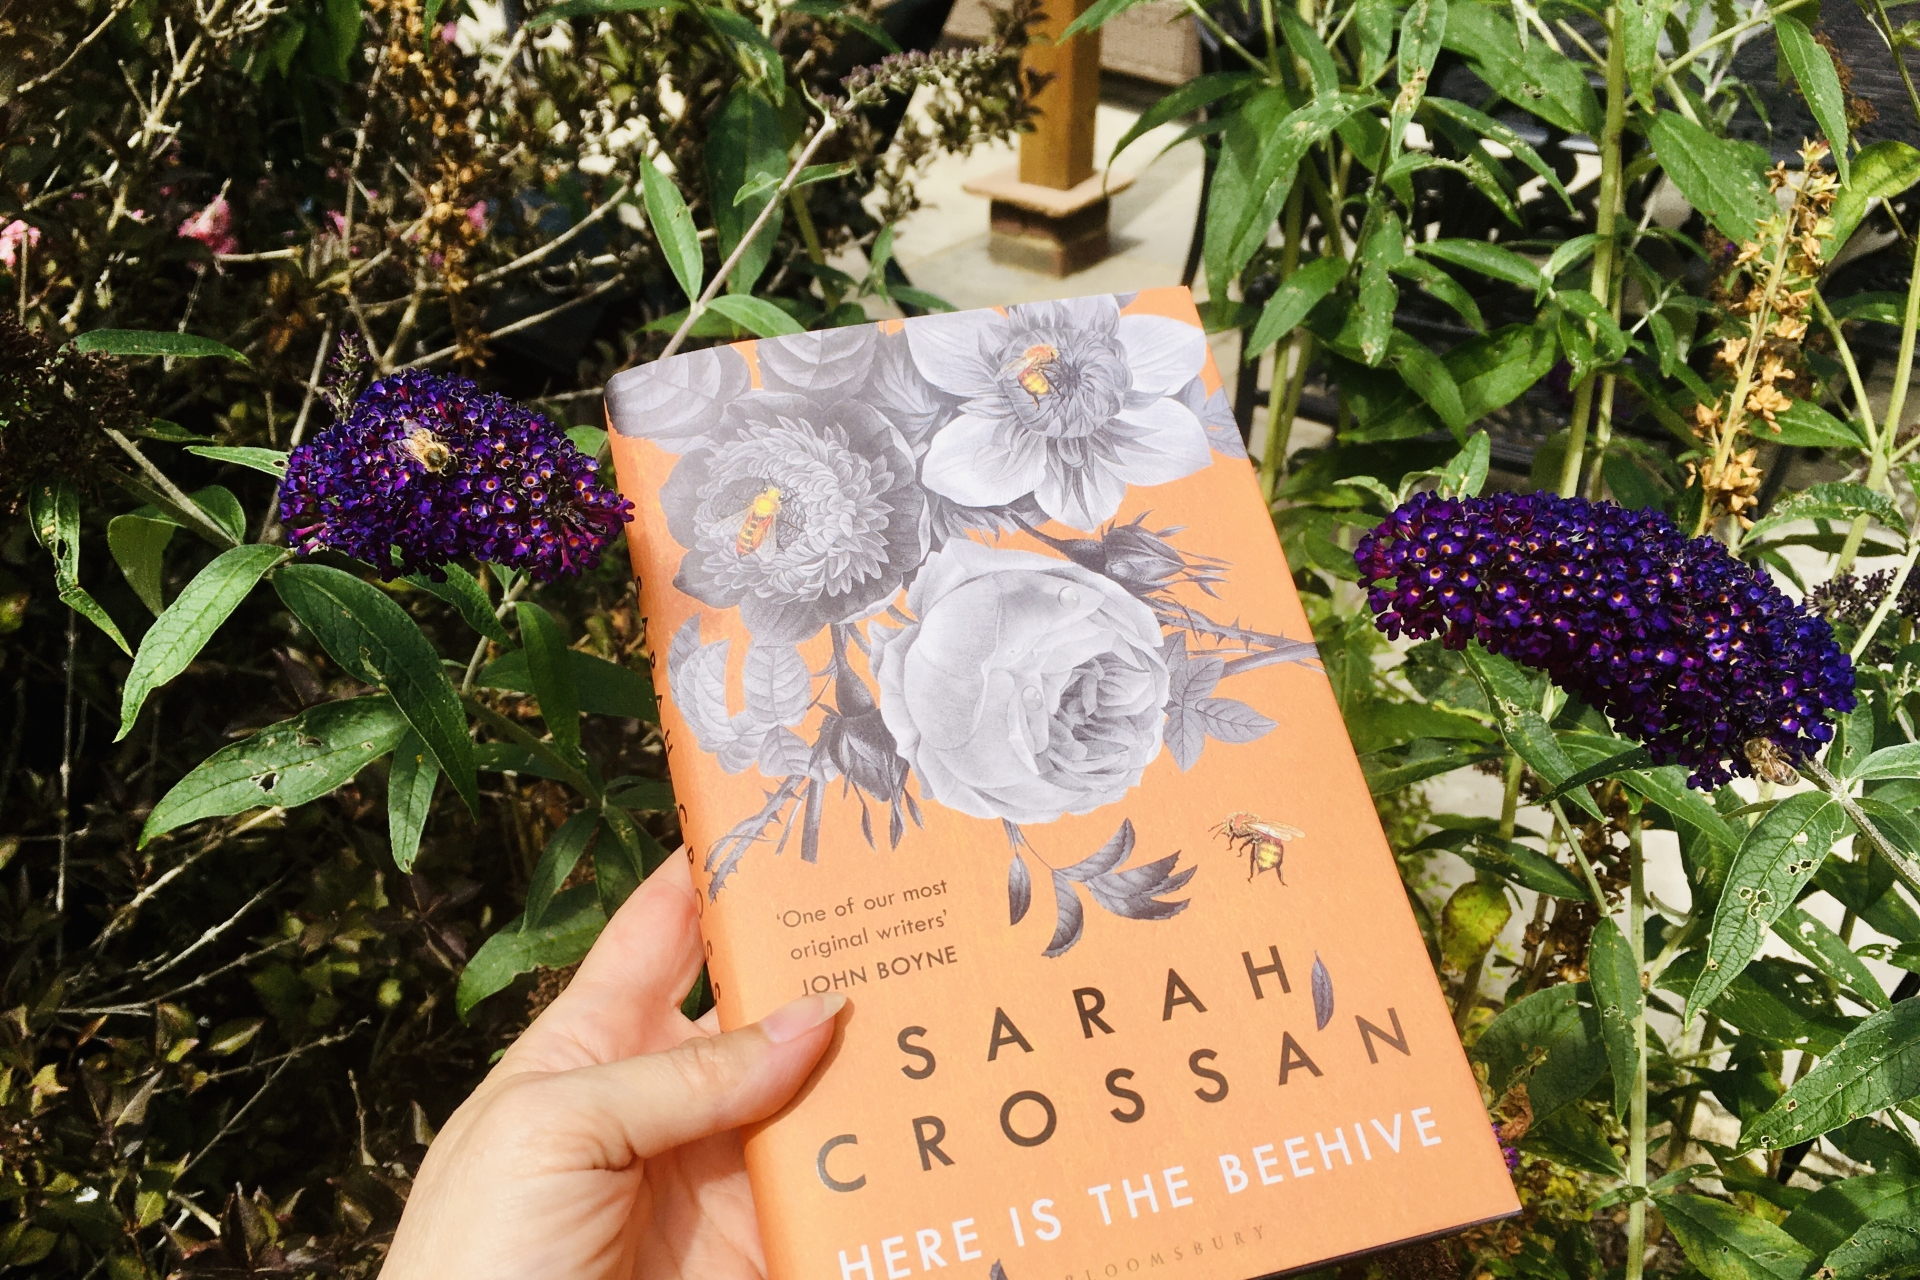 September 2020 Book Club Recommendation: Here is the Beehive by Sarah Crossan